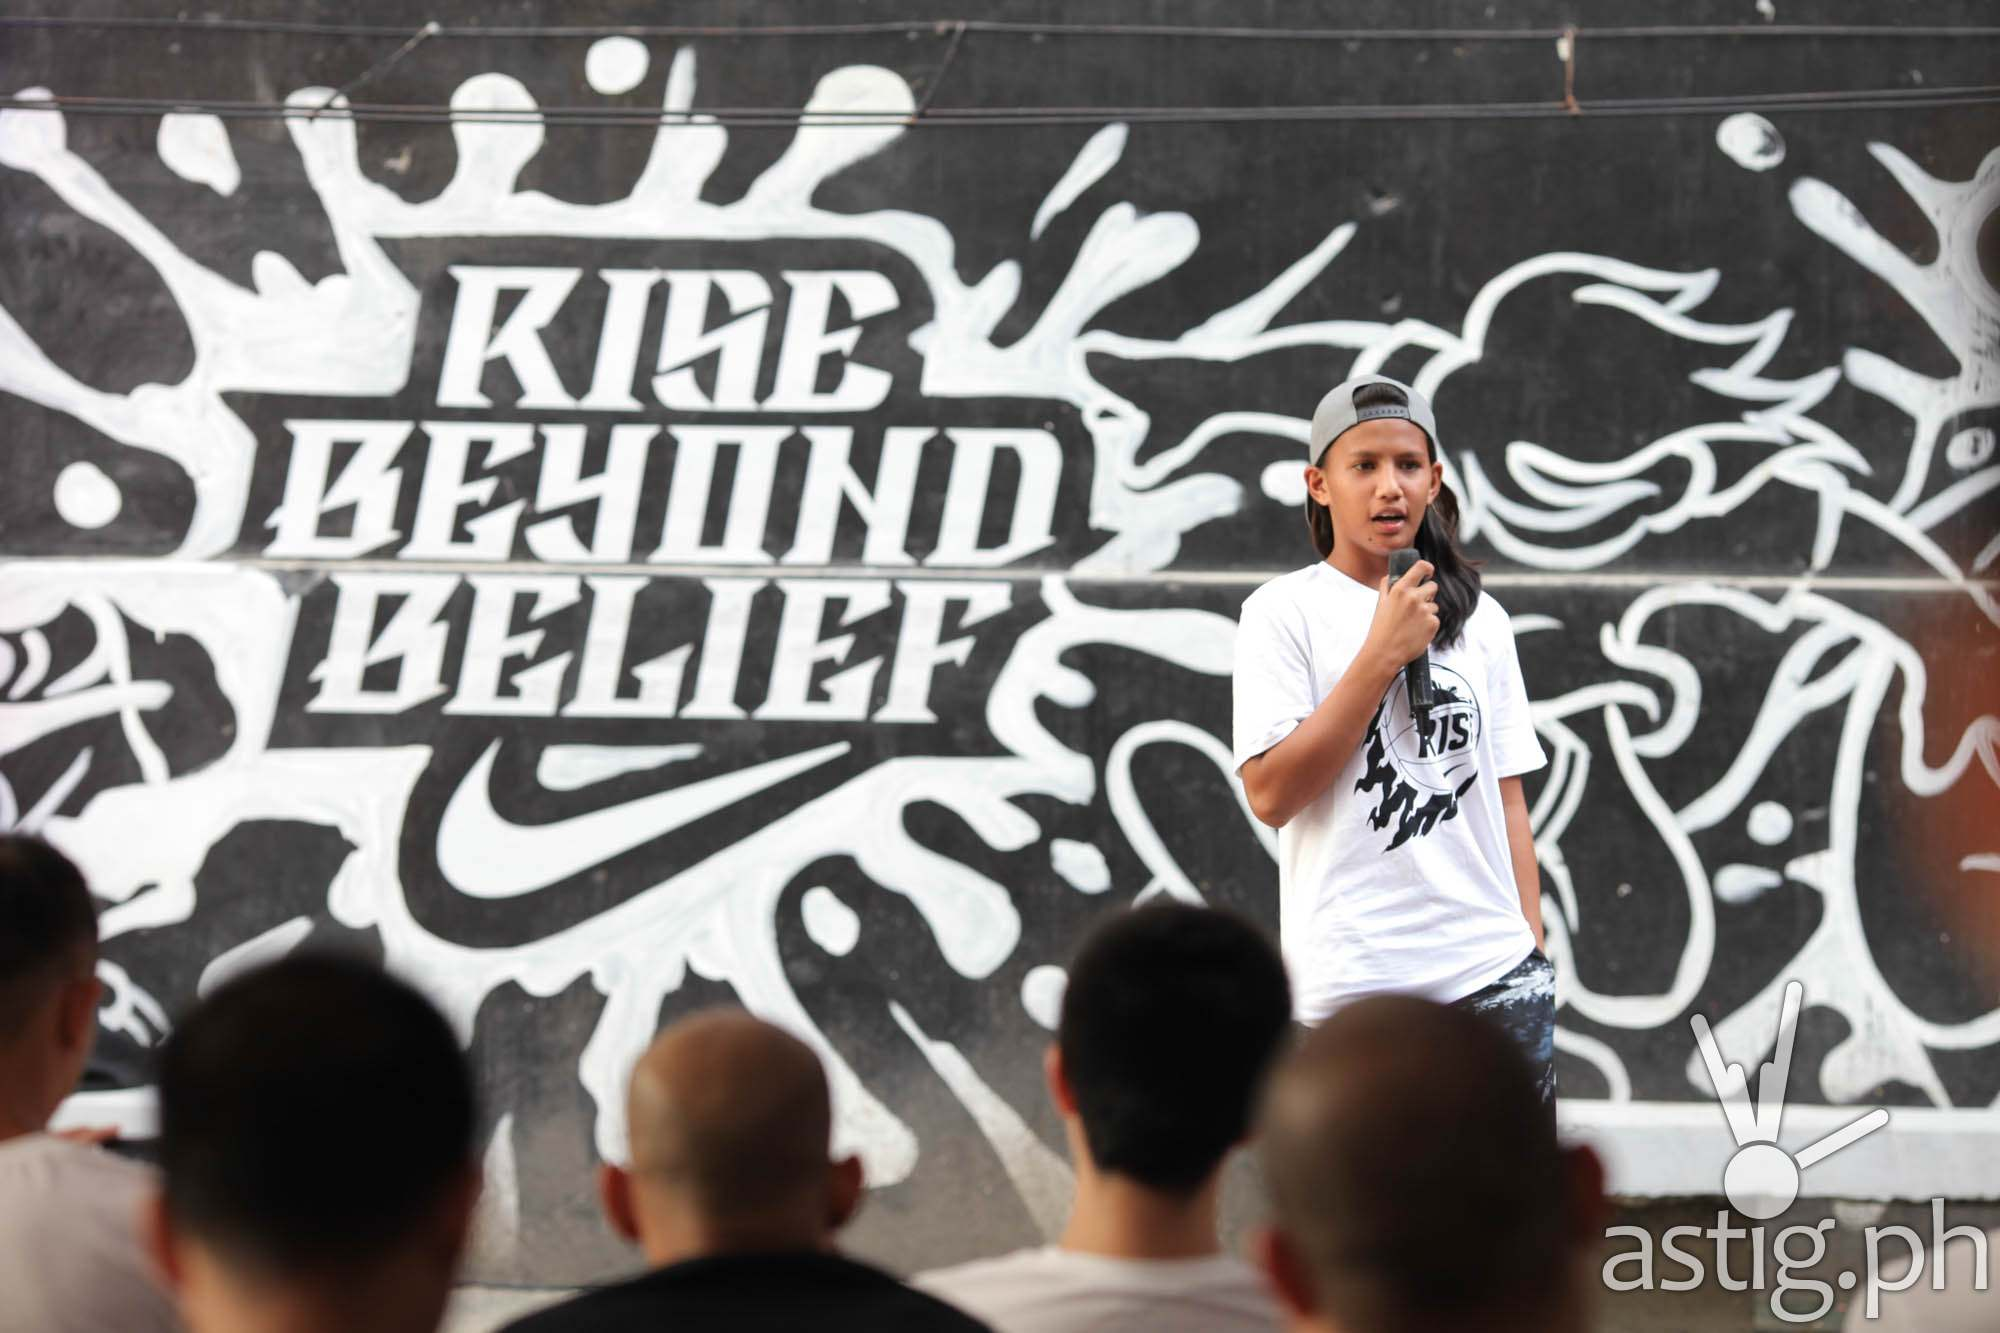 NIKE WE RISE - 2. Rise player Kristine Cayabyab sharing her Rise story and where it has landed her now